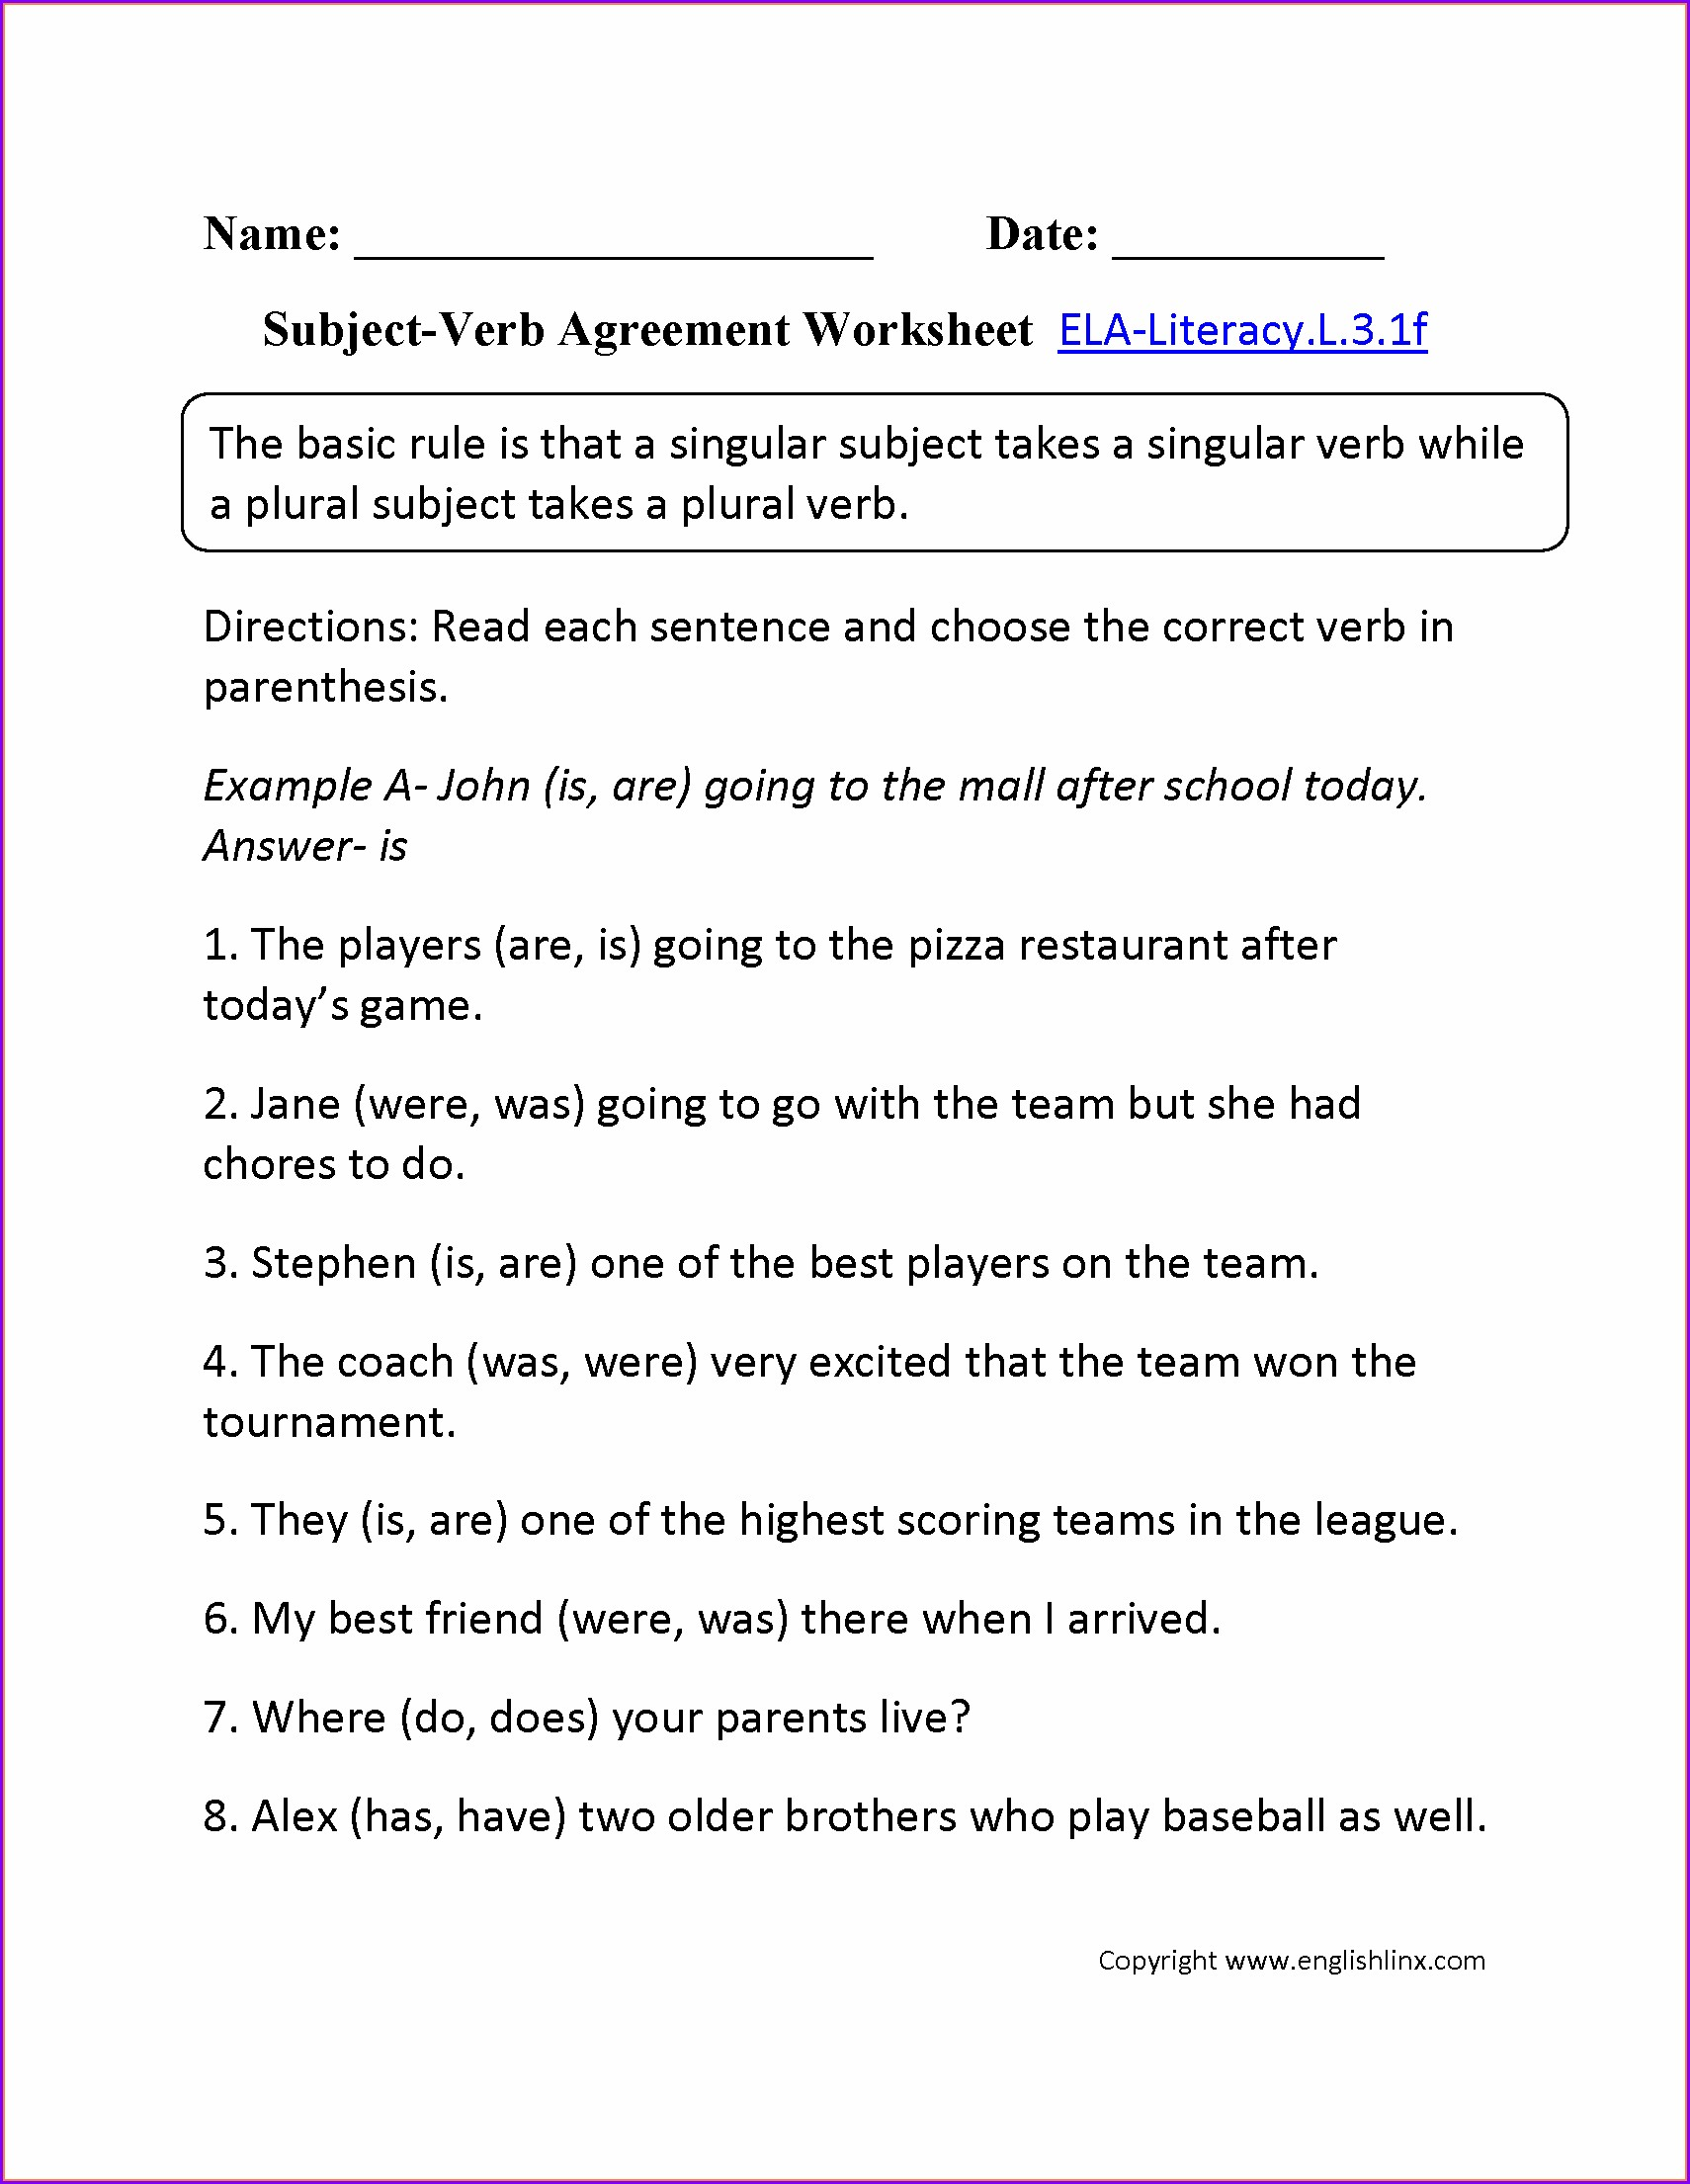 Subject Verb Agreement Exercises For Class 8